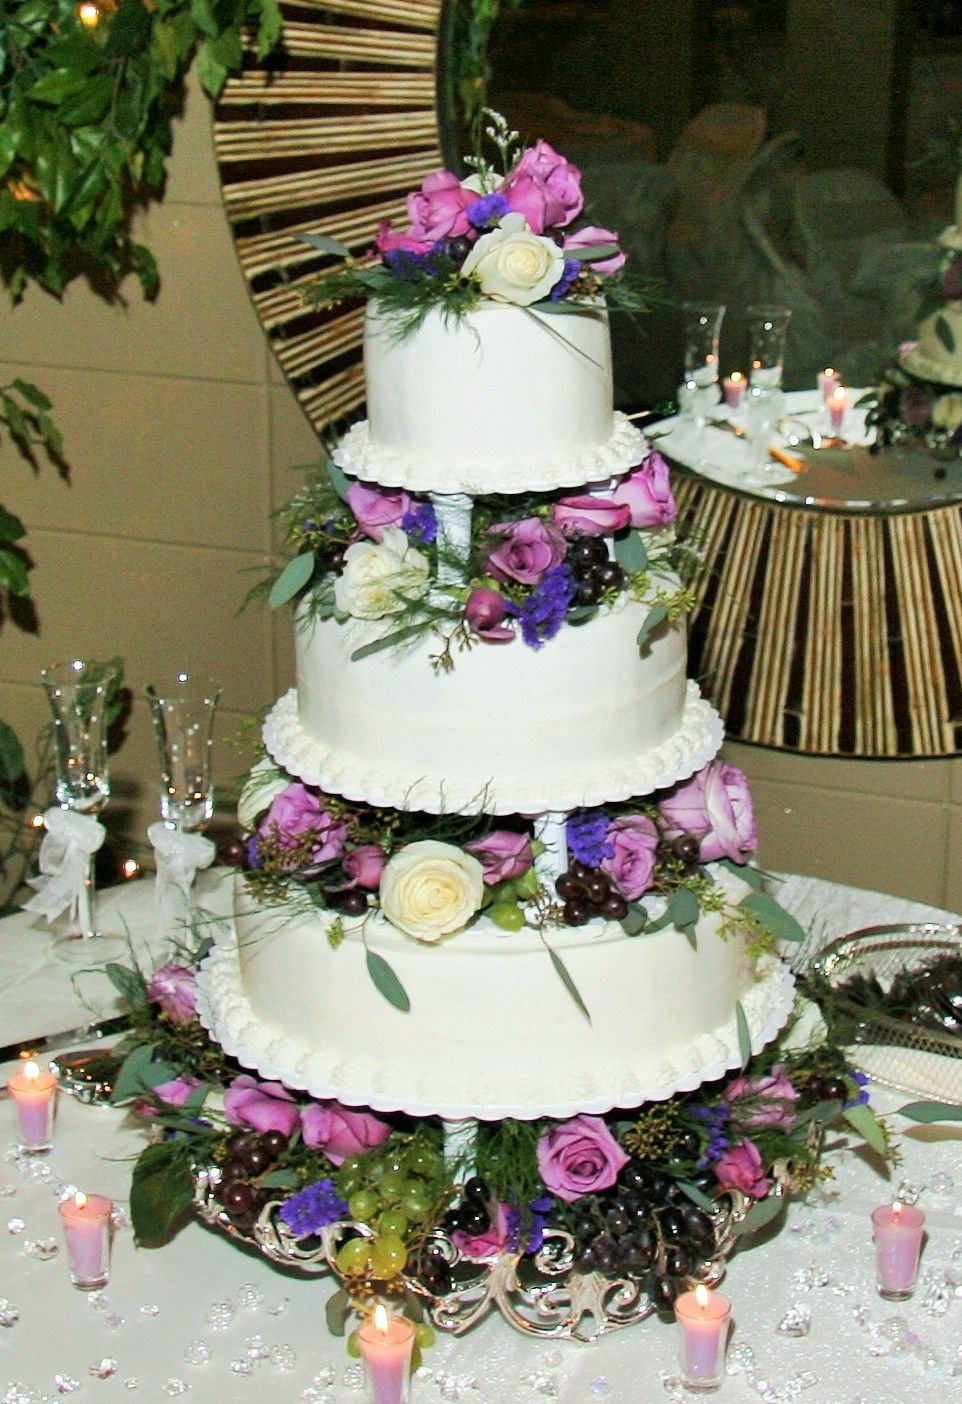 3 Tier Round Wedding Cake With Columns And Purple White Flowers